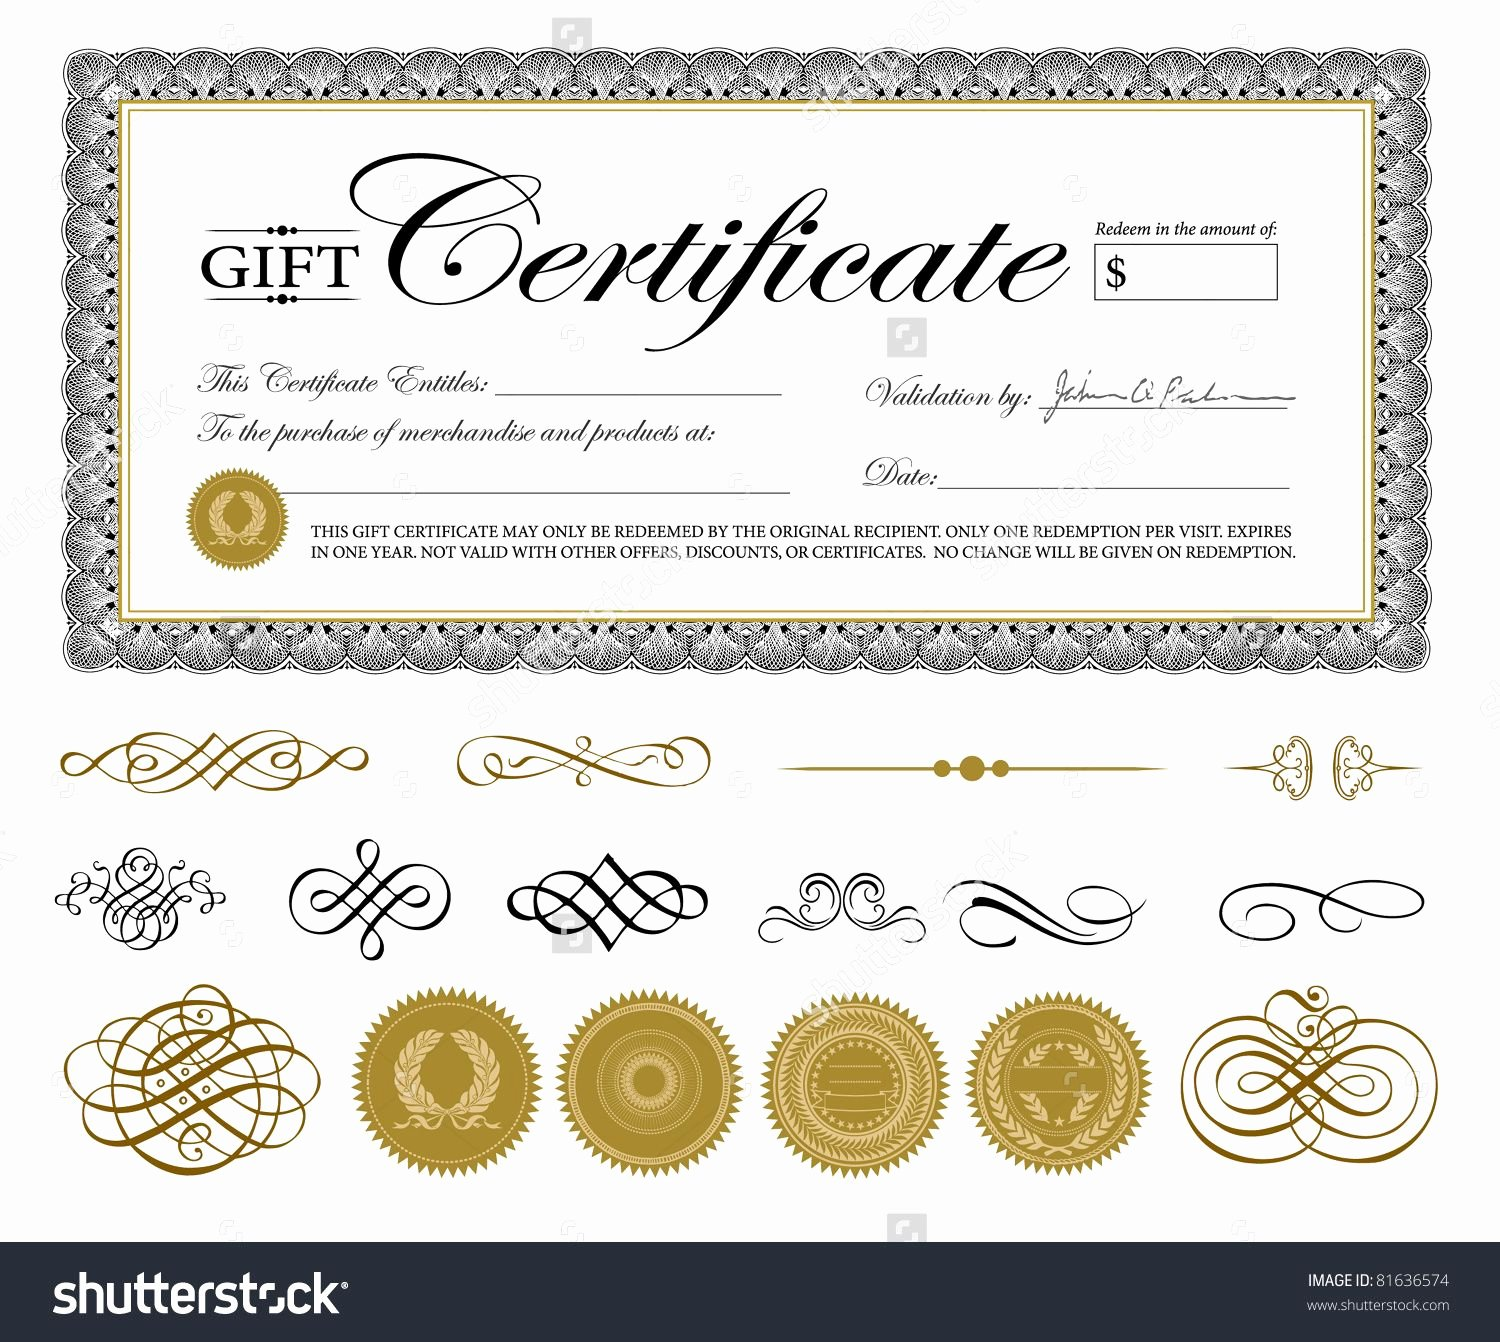 Gftlz Gift Certificate Template Download Elegant Vector Premium Certificate Template and ornaments Easy to